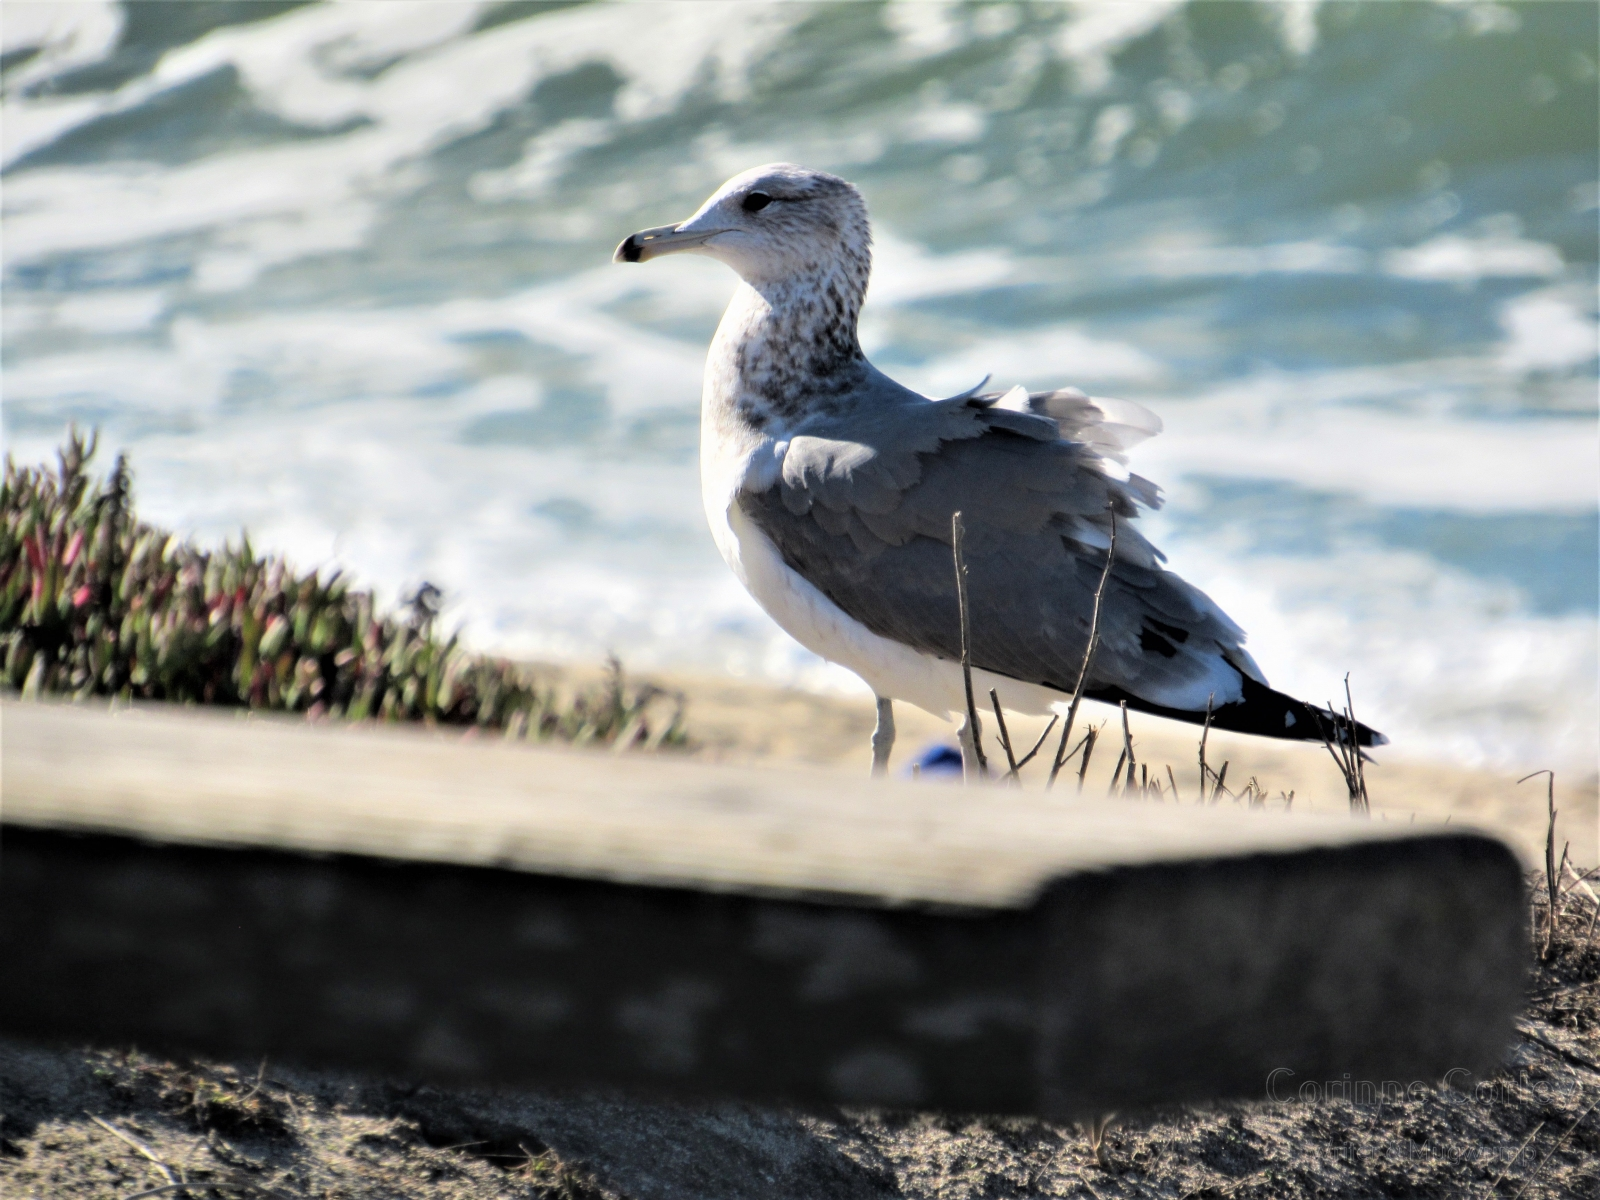 Gull on the bench